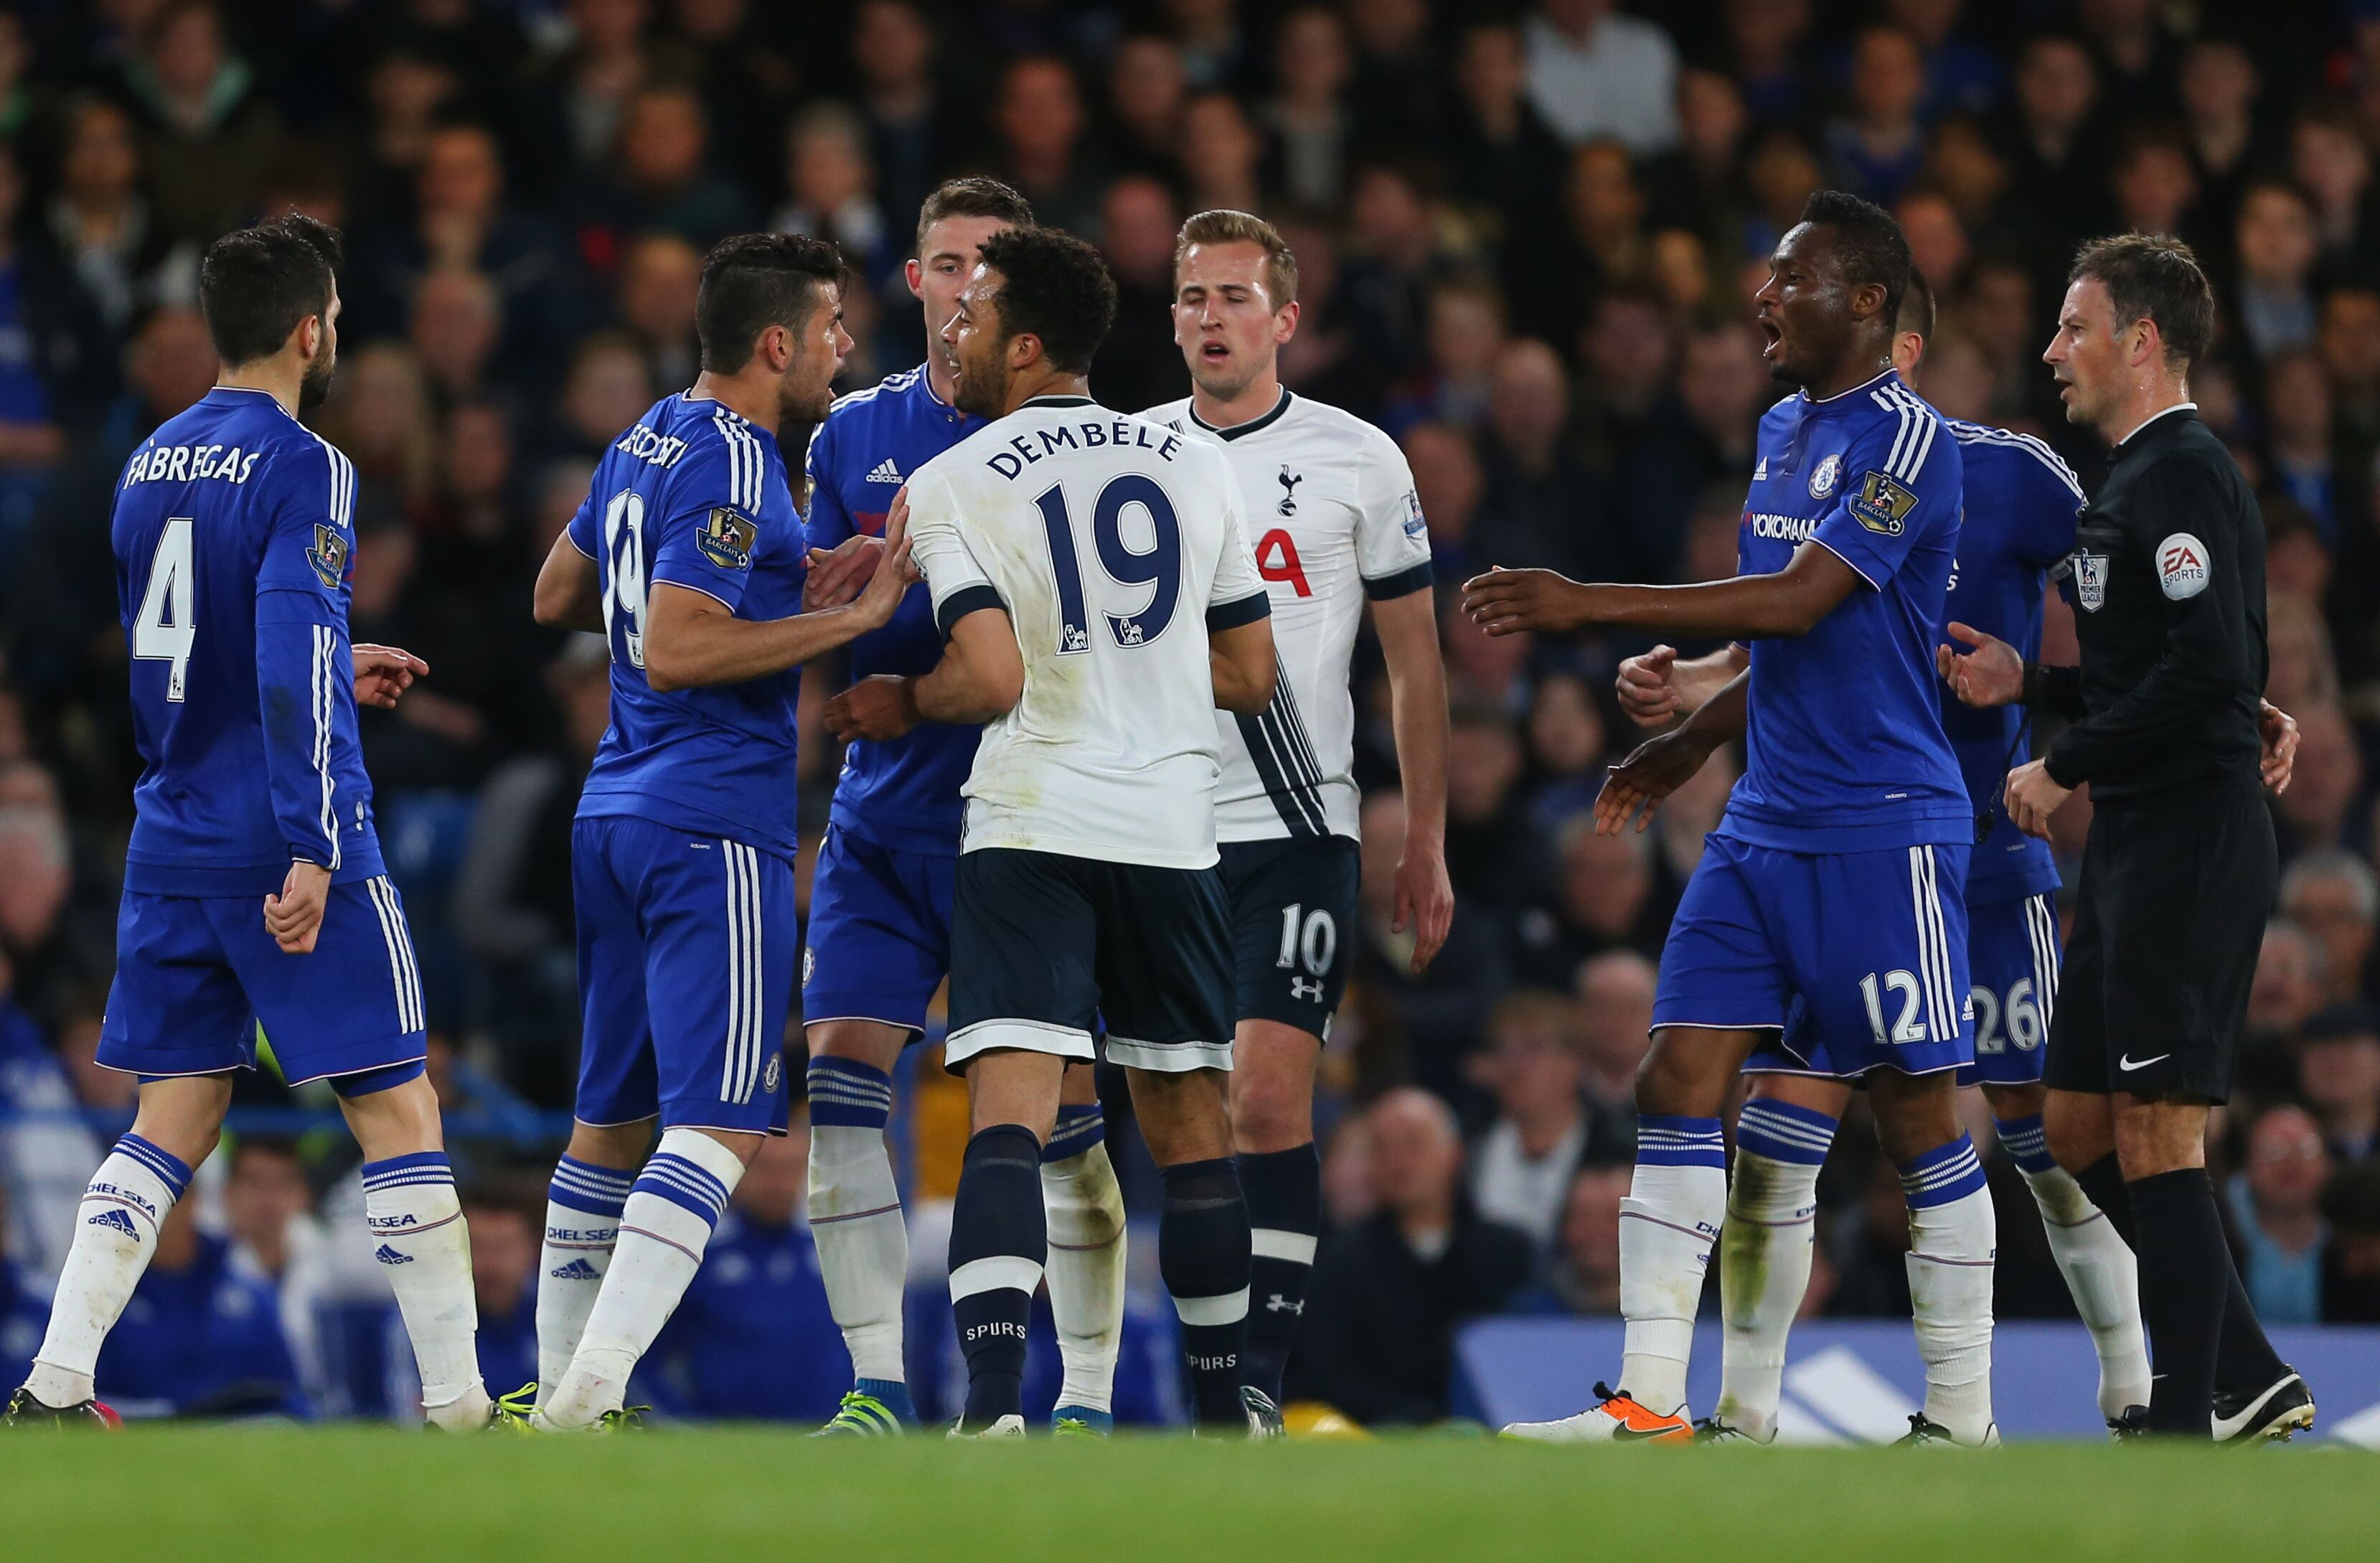 Tottenham Vs Chelsea: Tottenham's Mousa Dembélé Banned For Six Games